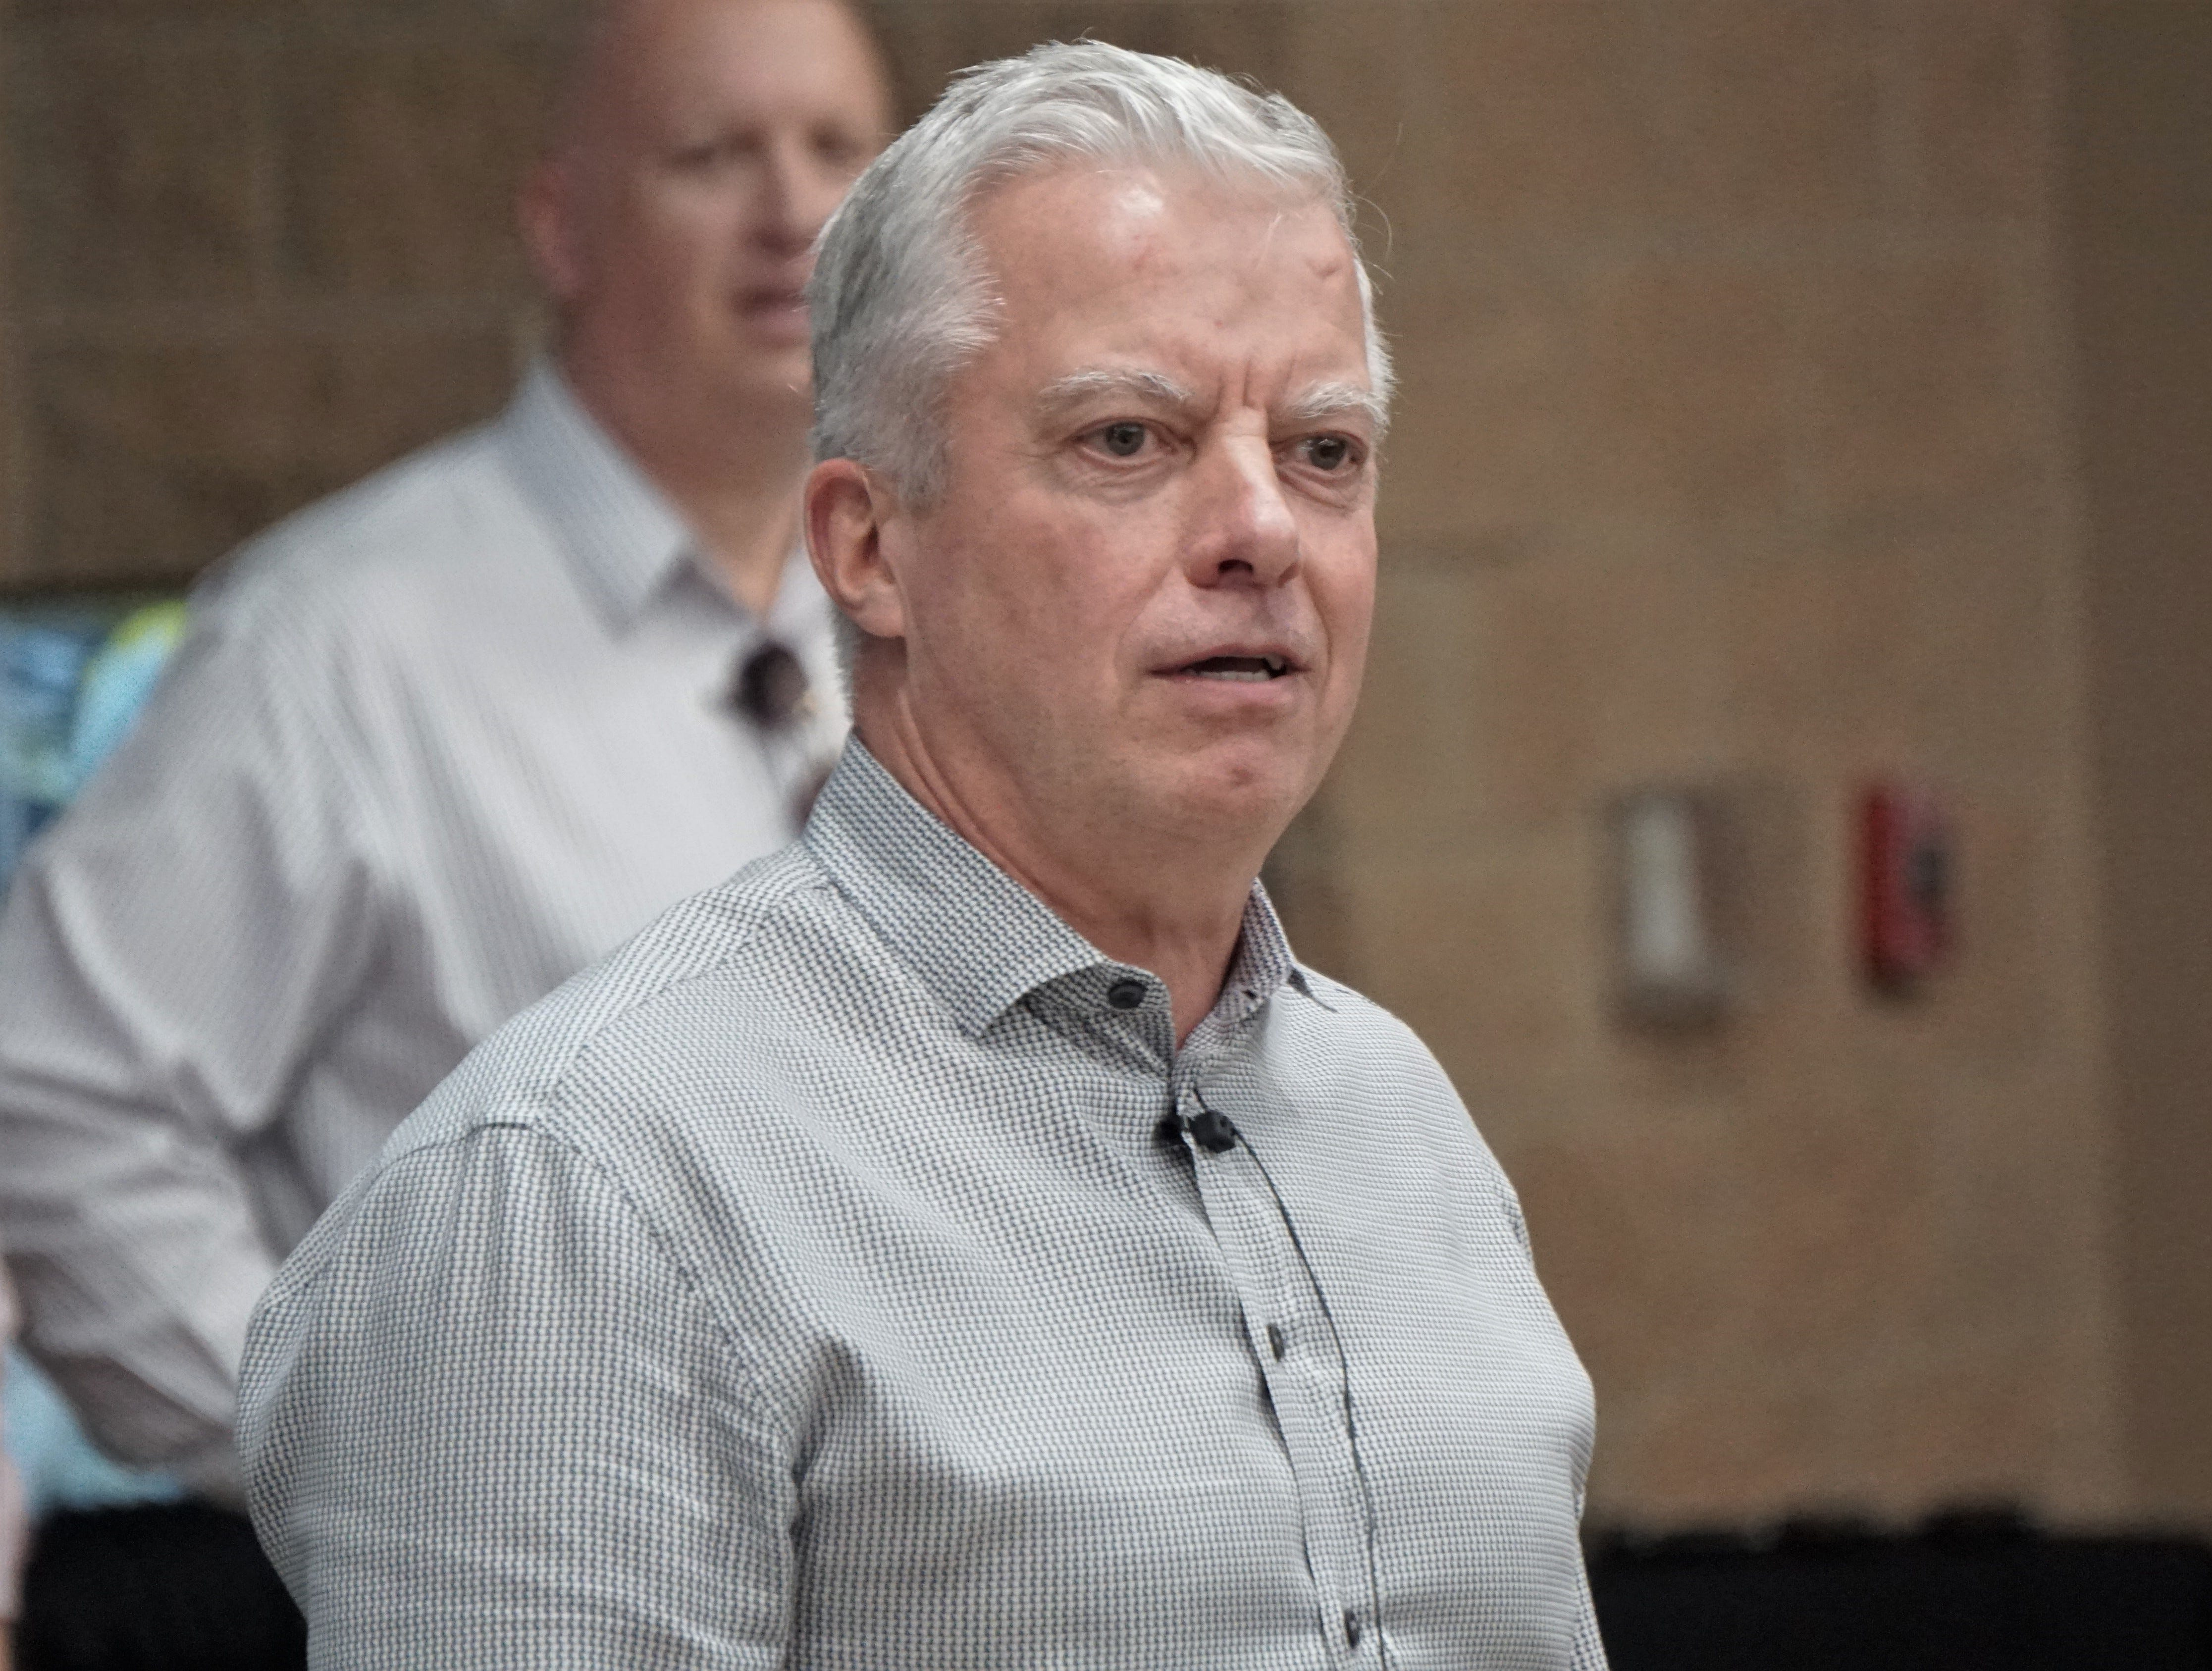 Mark Millett, president and CEO of Steel Dynamics, speaks during a meet and greet at the San Patricio County Civic Center in Sinton on March 13, 2019.